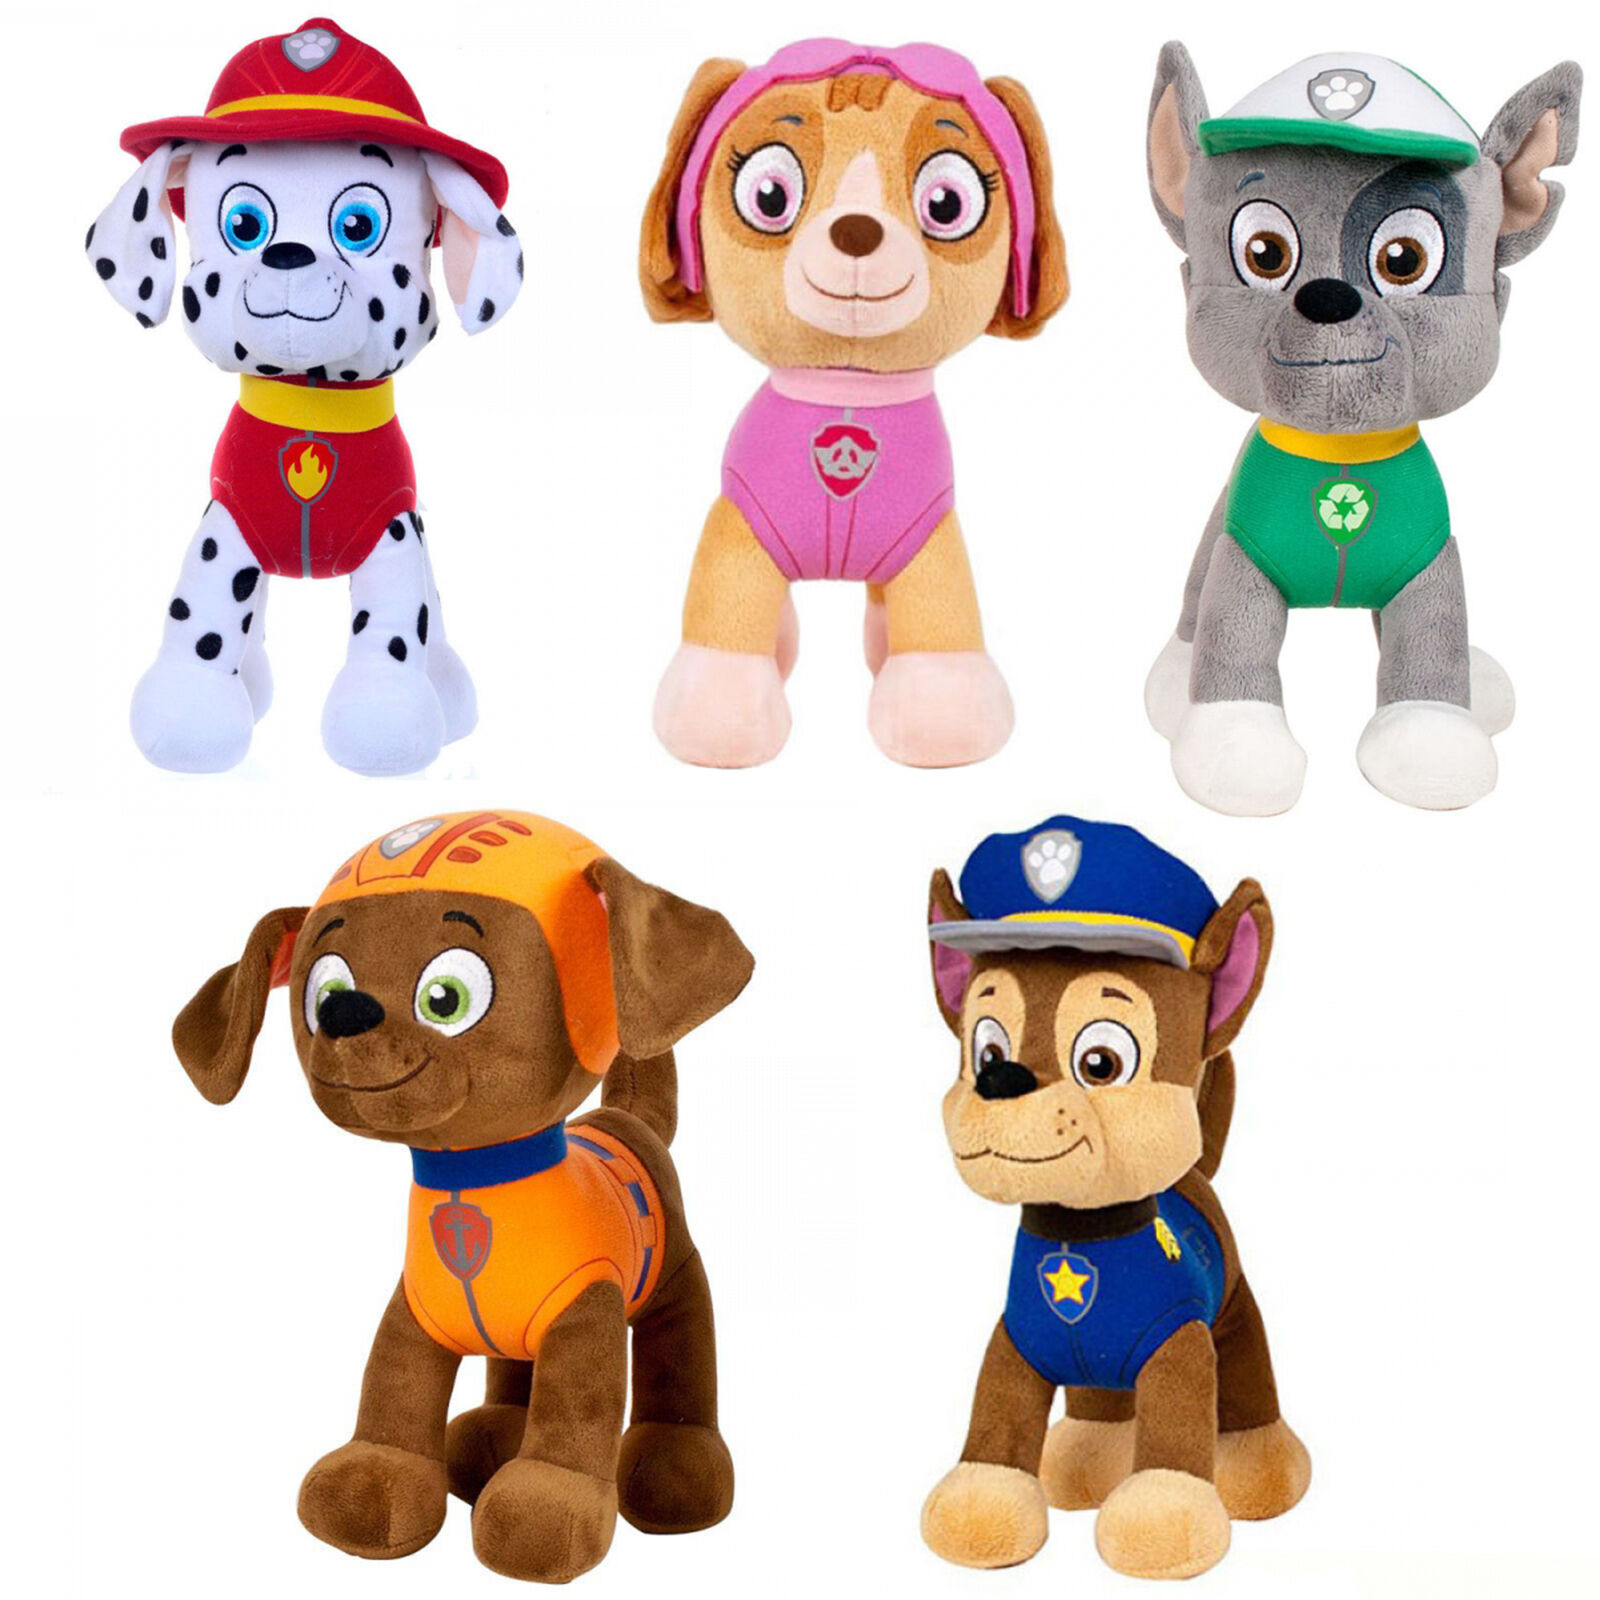 Paw Patrol Geofilter Options